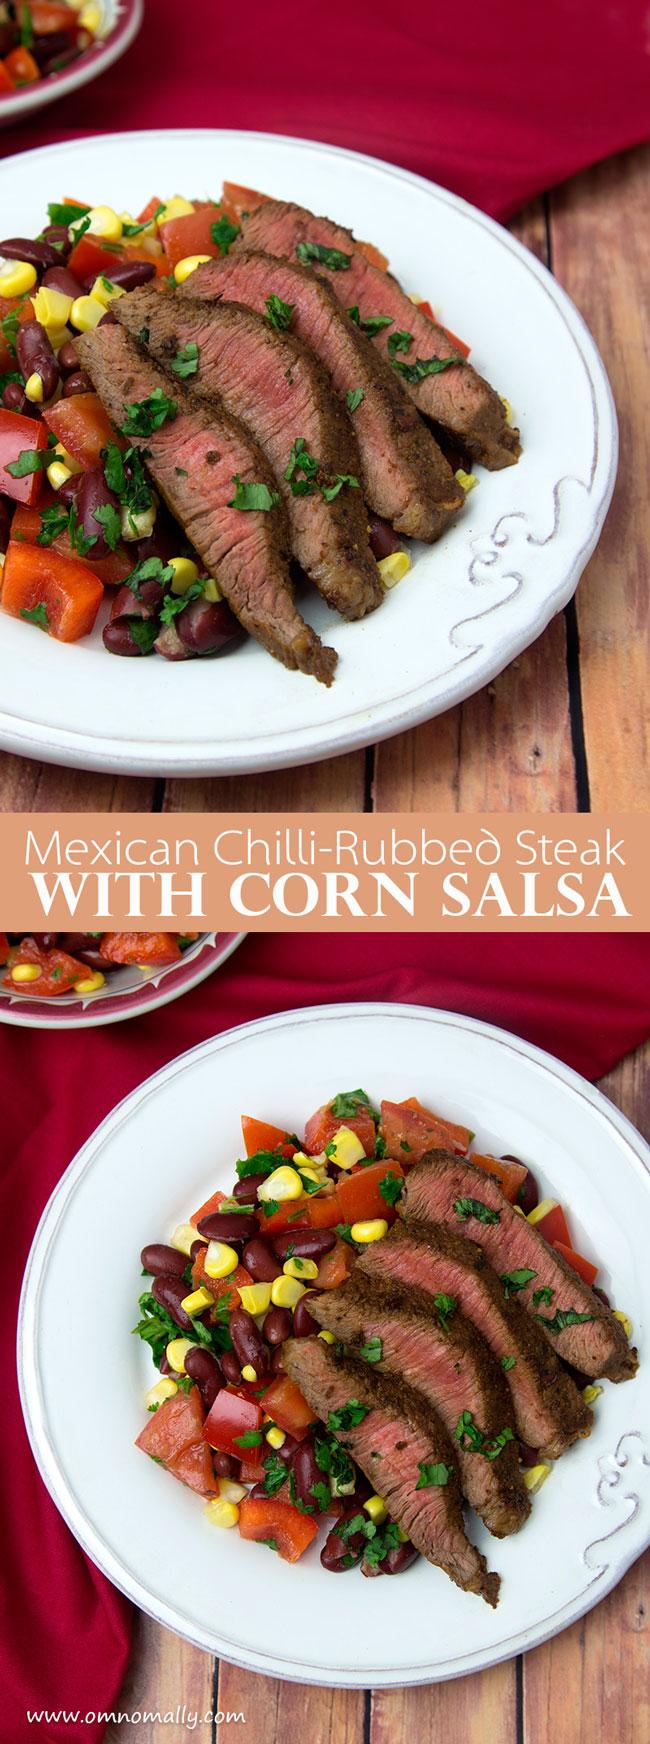 Mexican Chilli-Rubbed Steak with Corn Salsa @ OmNomAlly